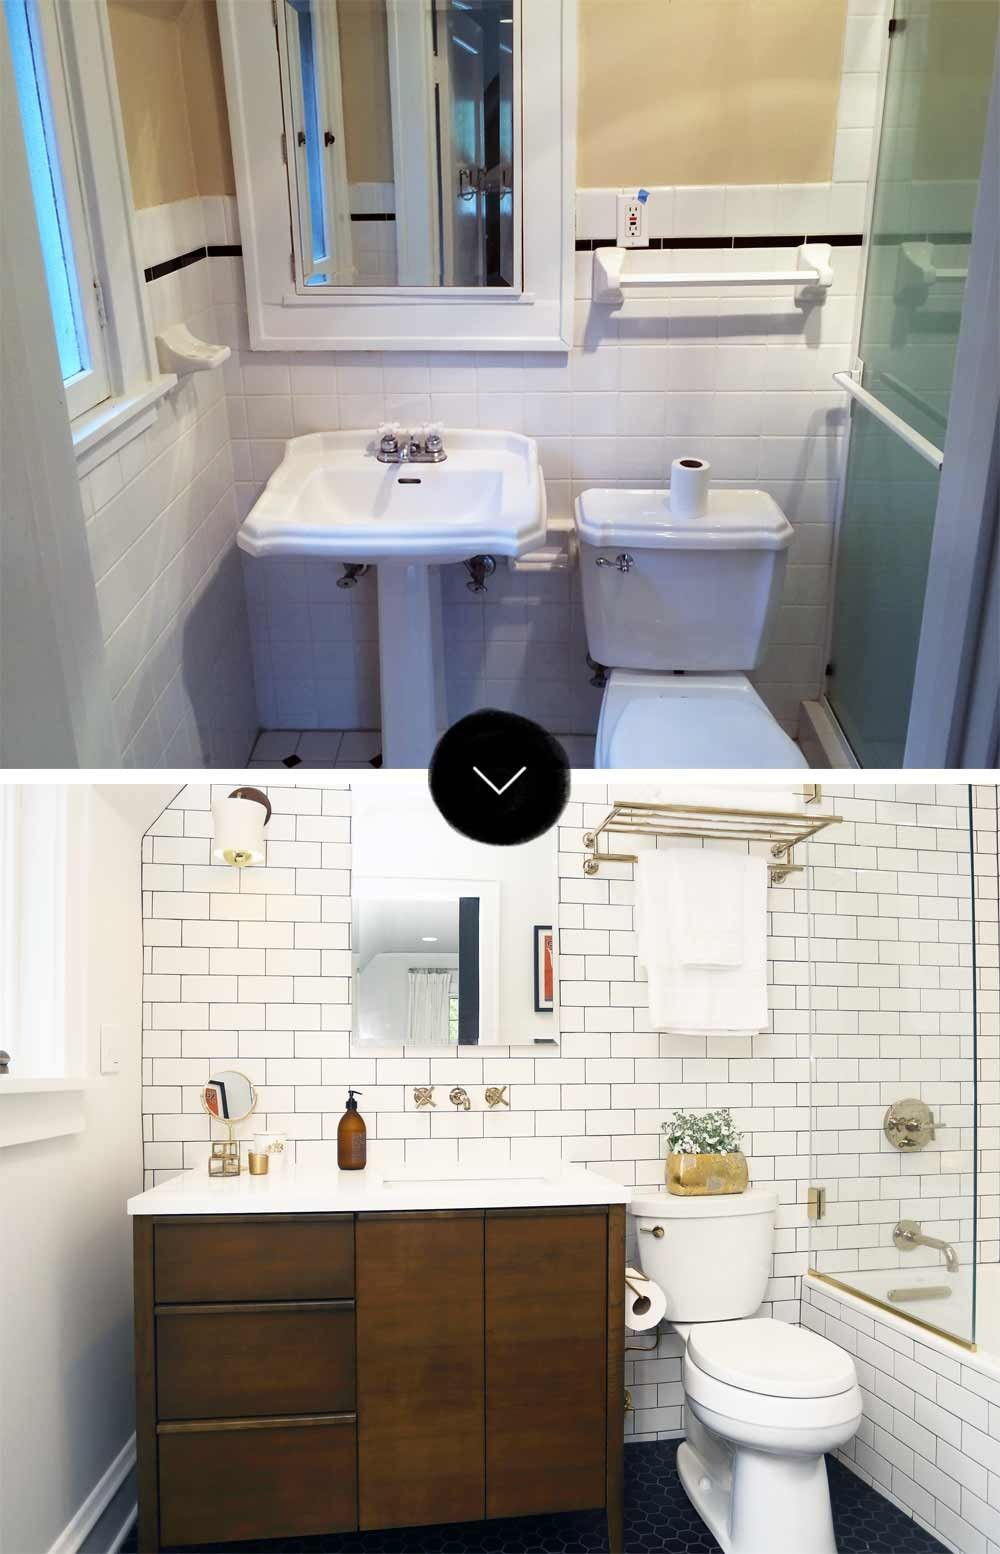 Before After A Light And Bright Tudor Remodel Old Home Remodel Home Remodeling Bathrooms Remodel